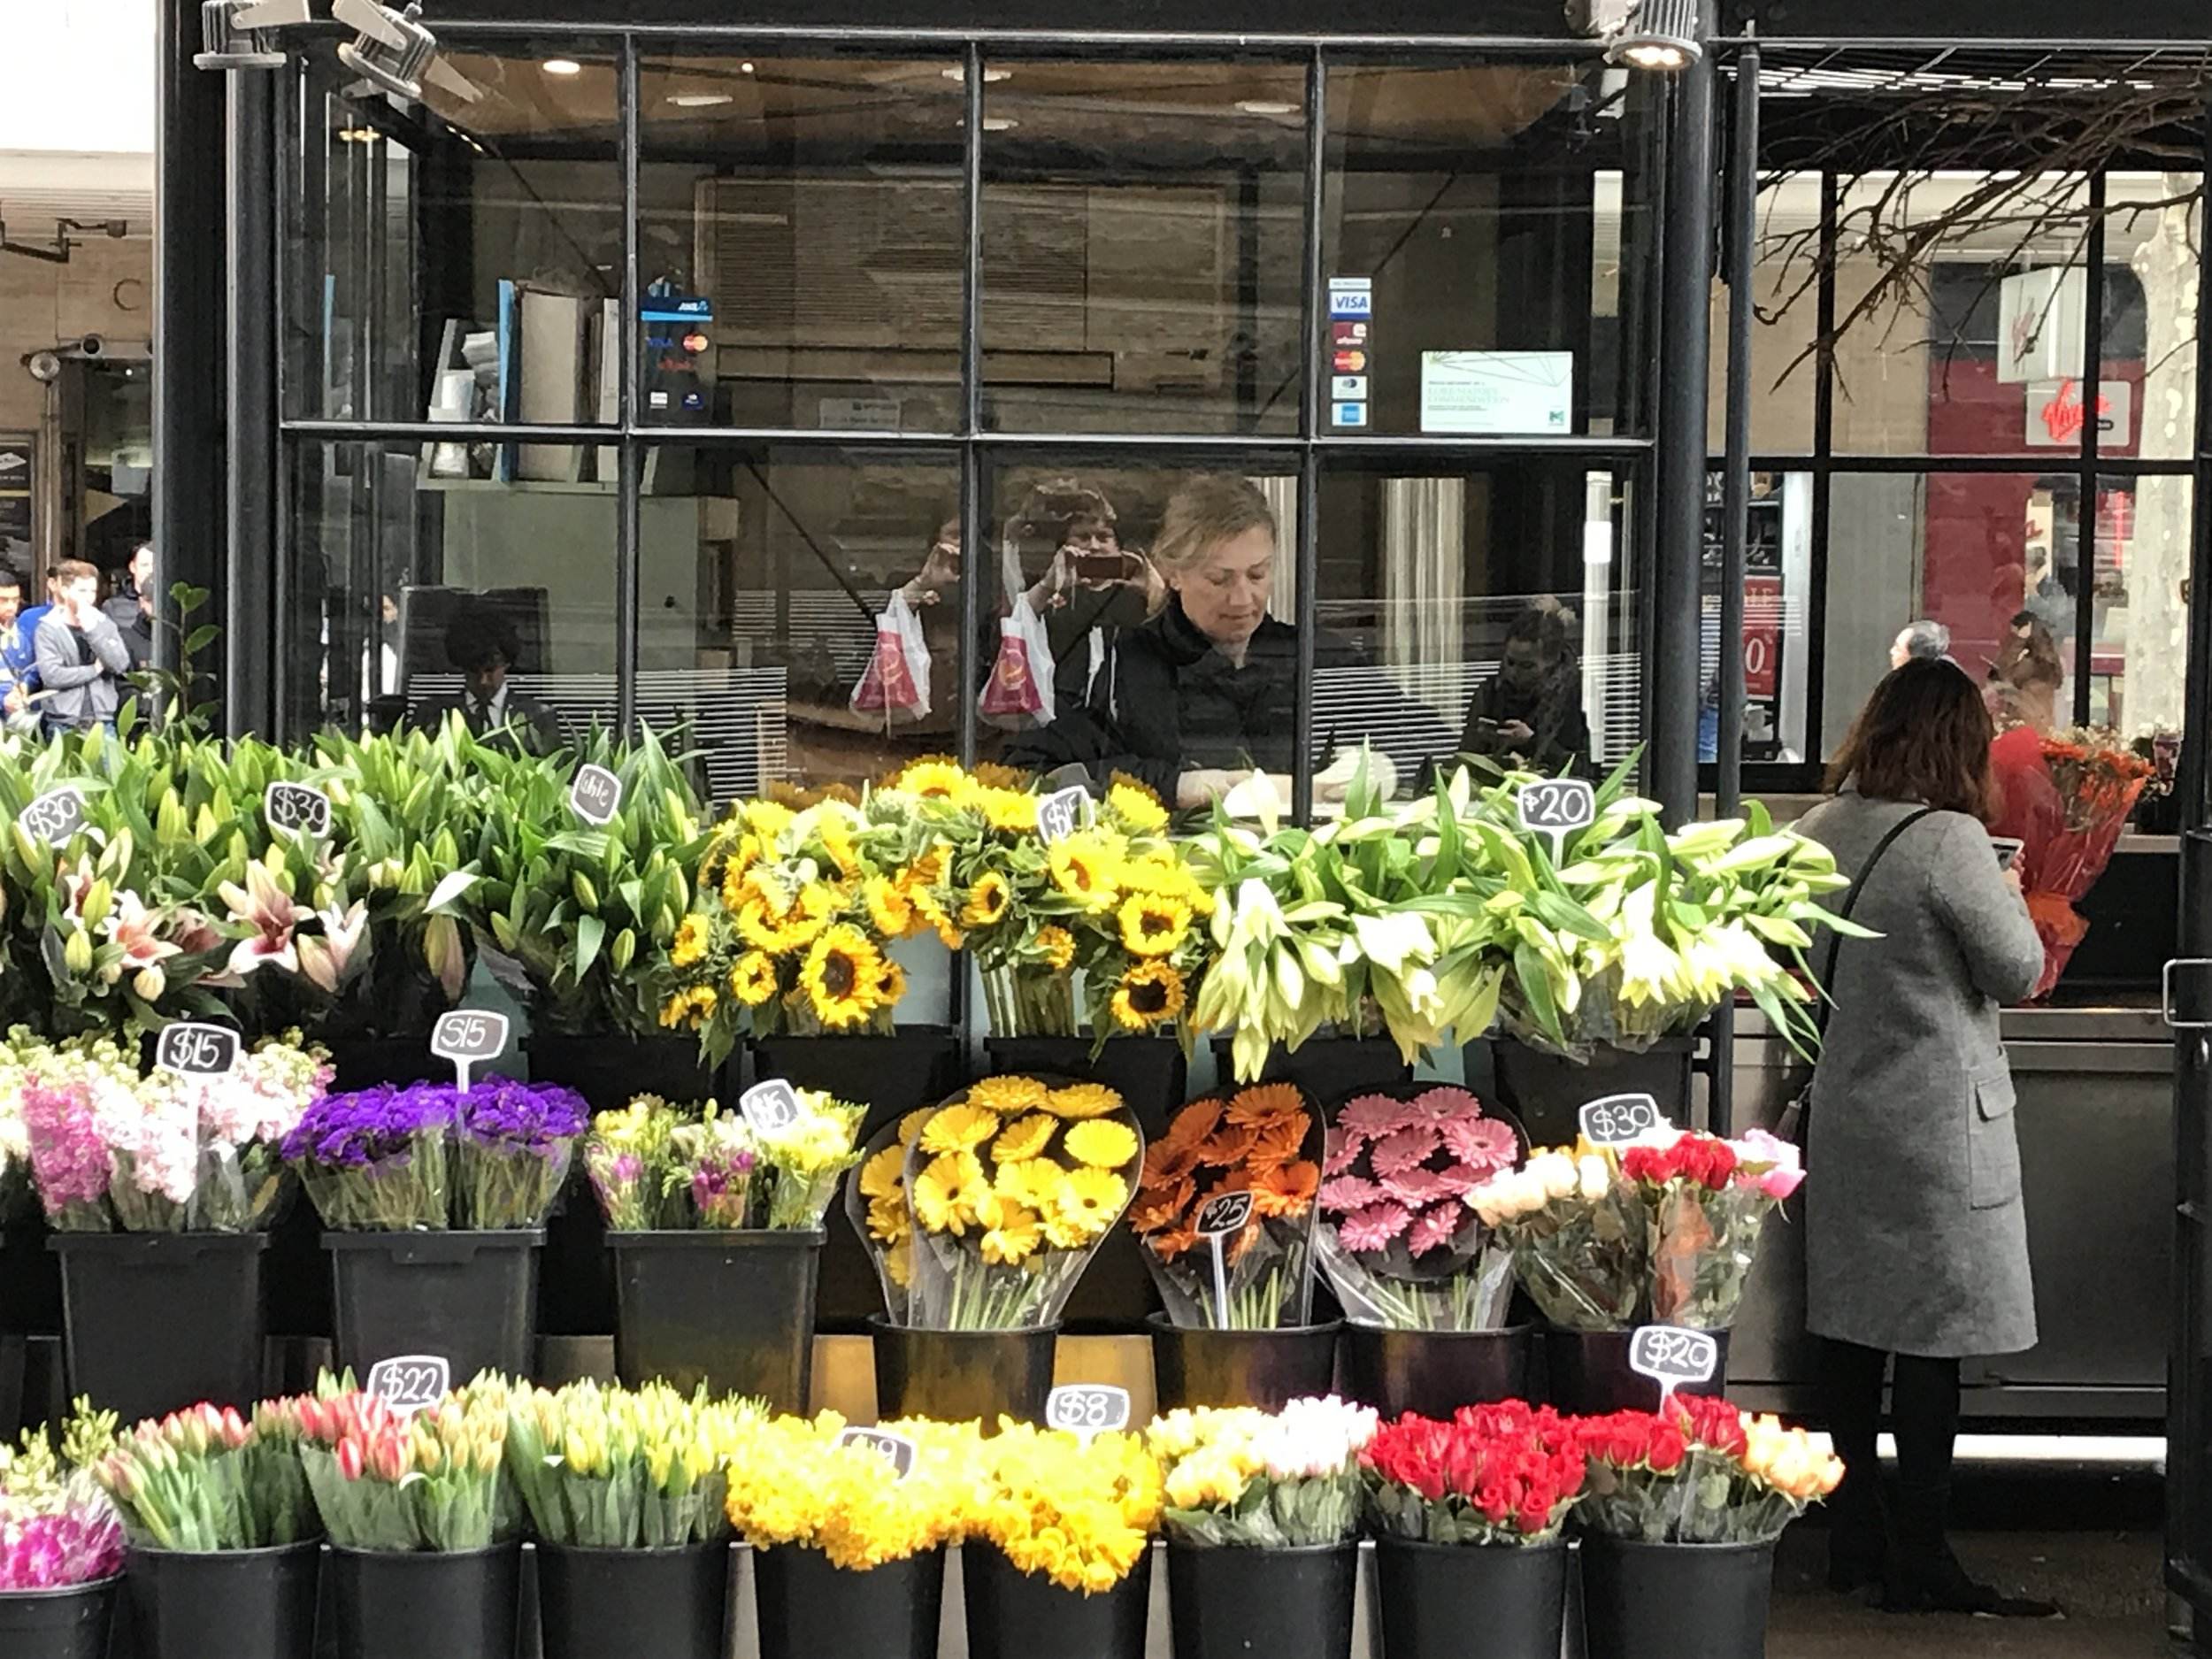 Flower seller Melbourne by The Doubtful Traveller